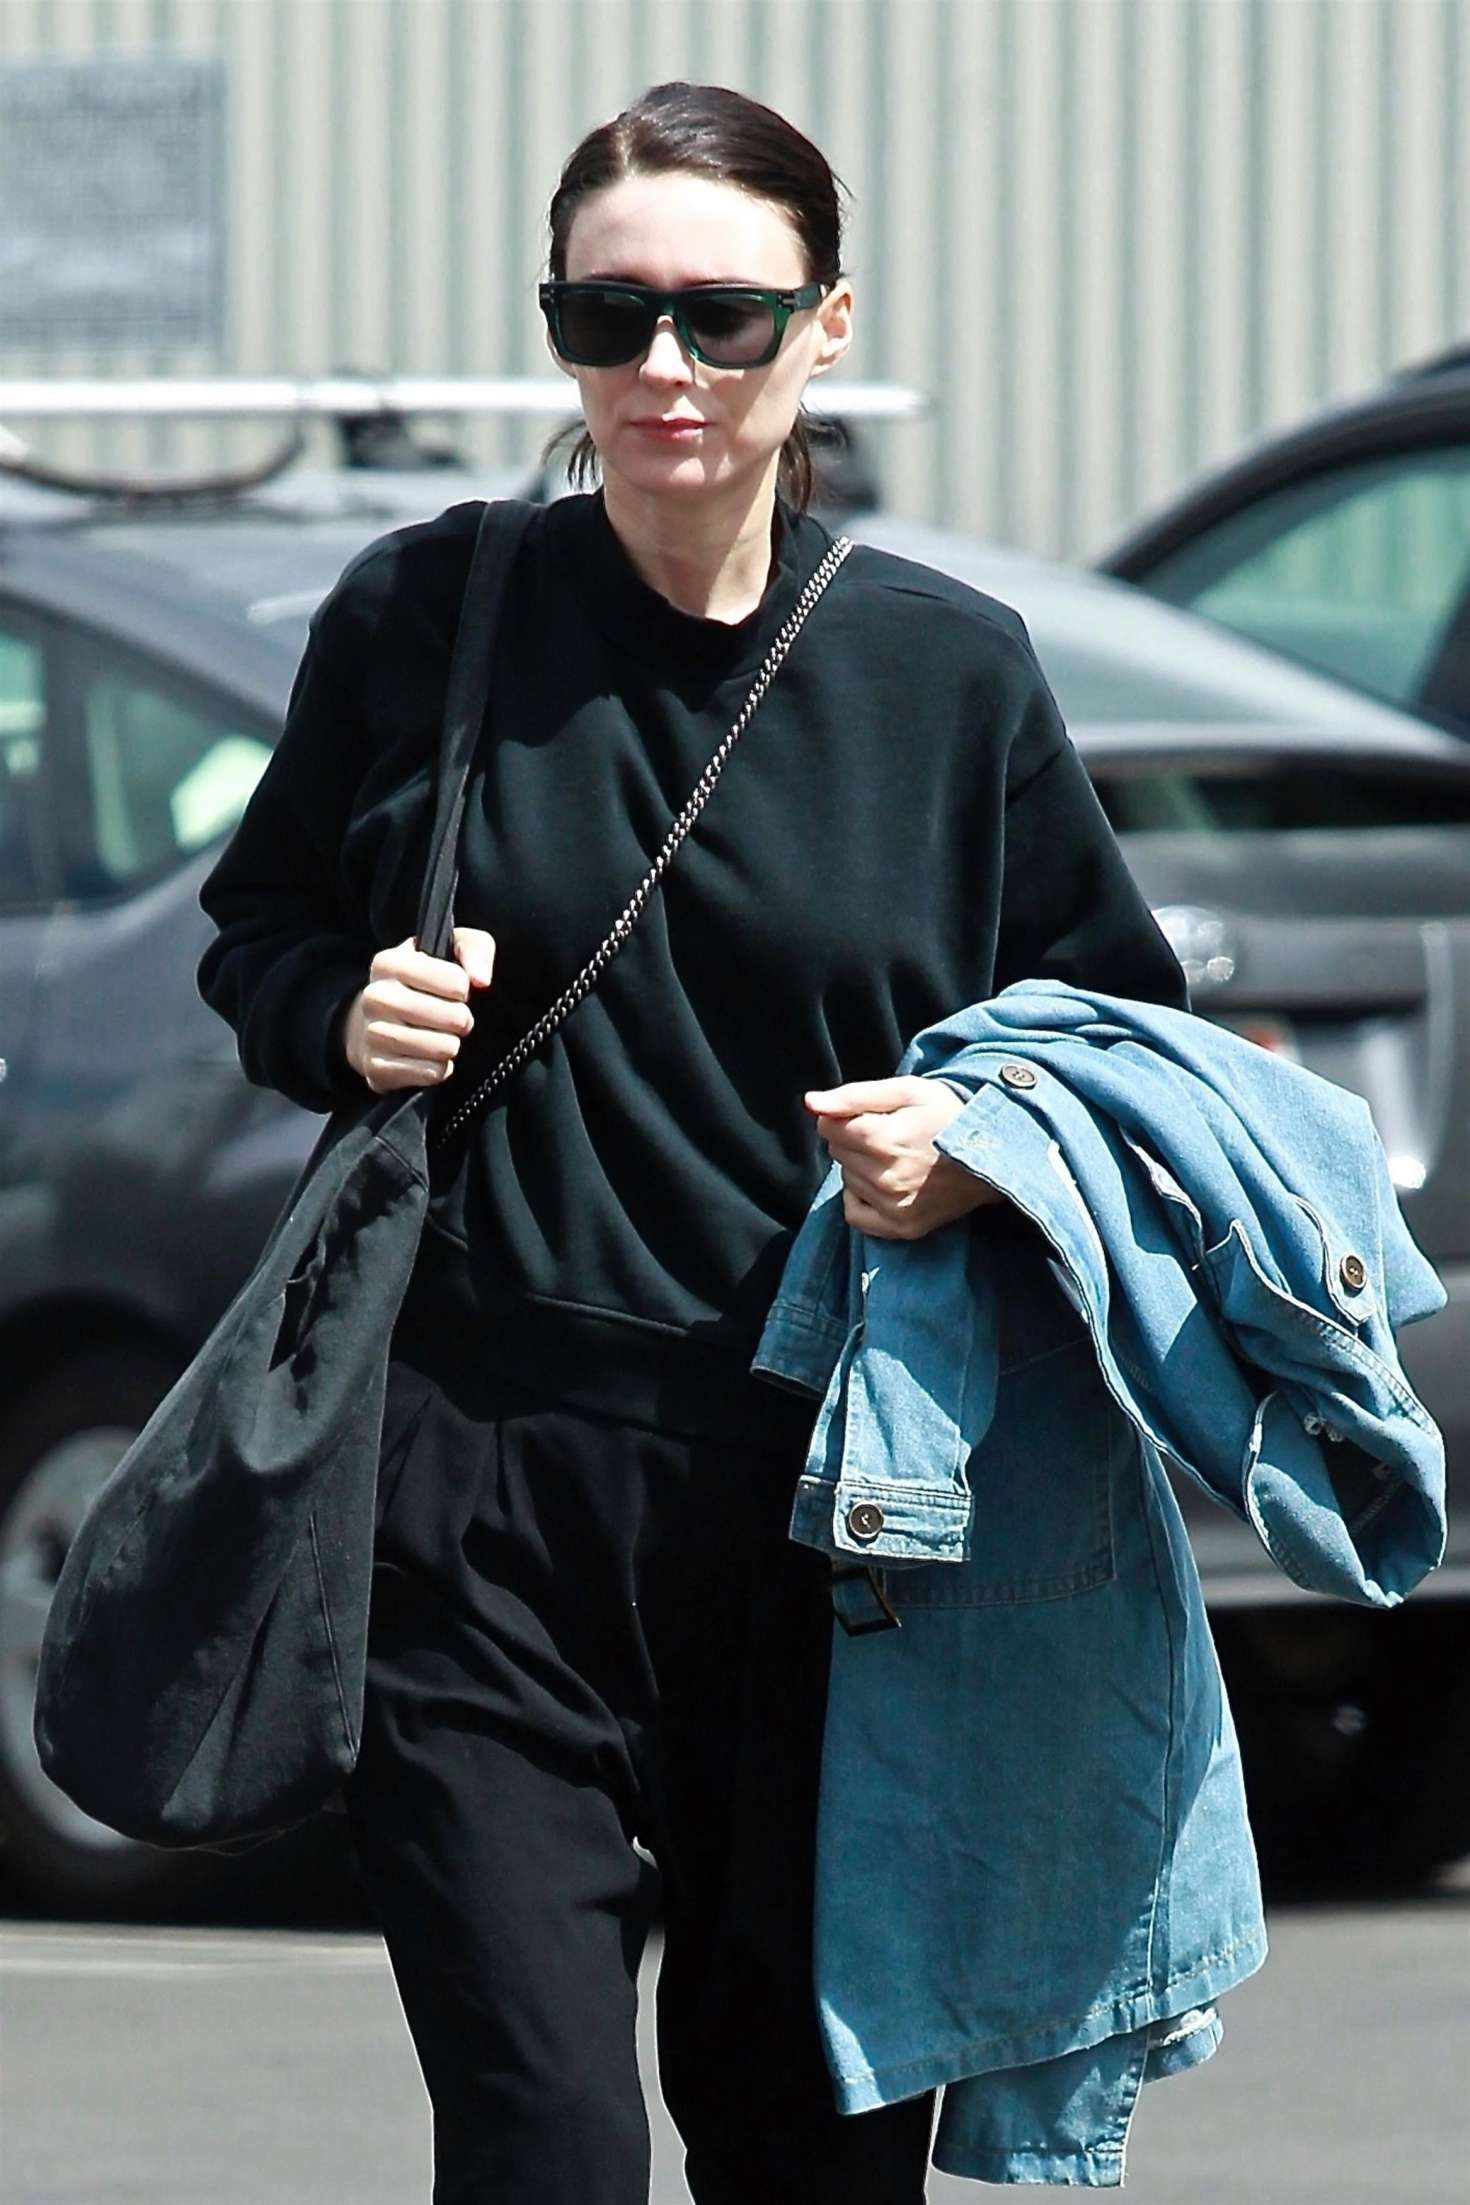 Rooney Mara 2018 : Rooney Mara in Black Out in Los Angeles -05